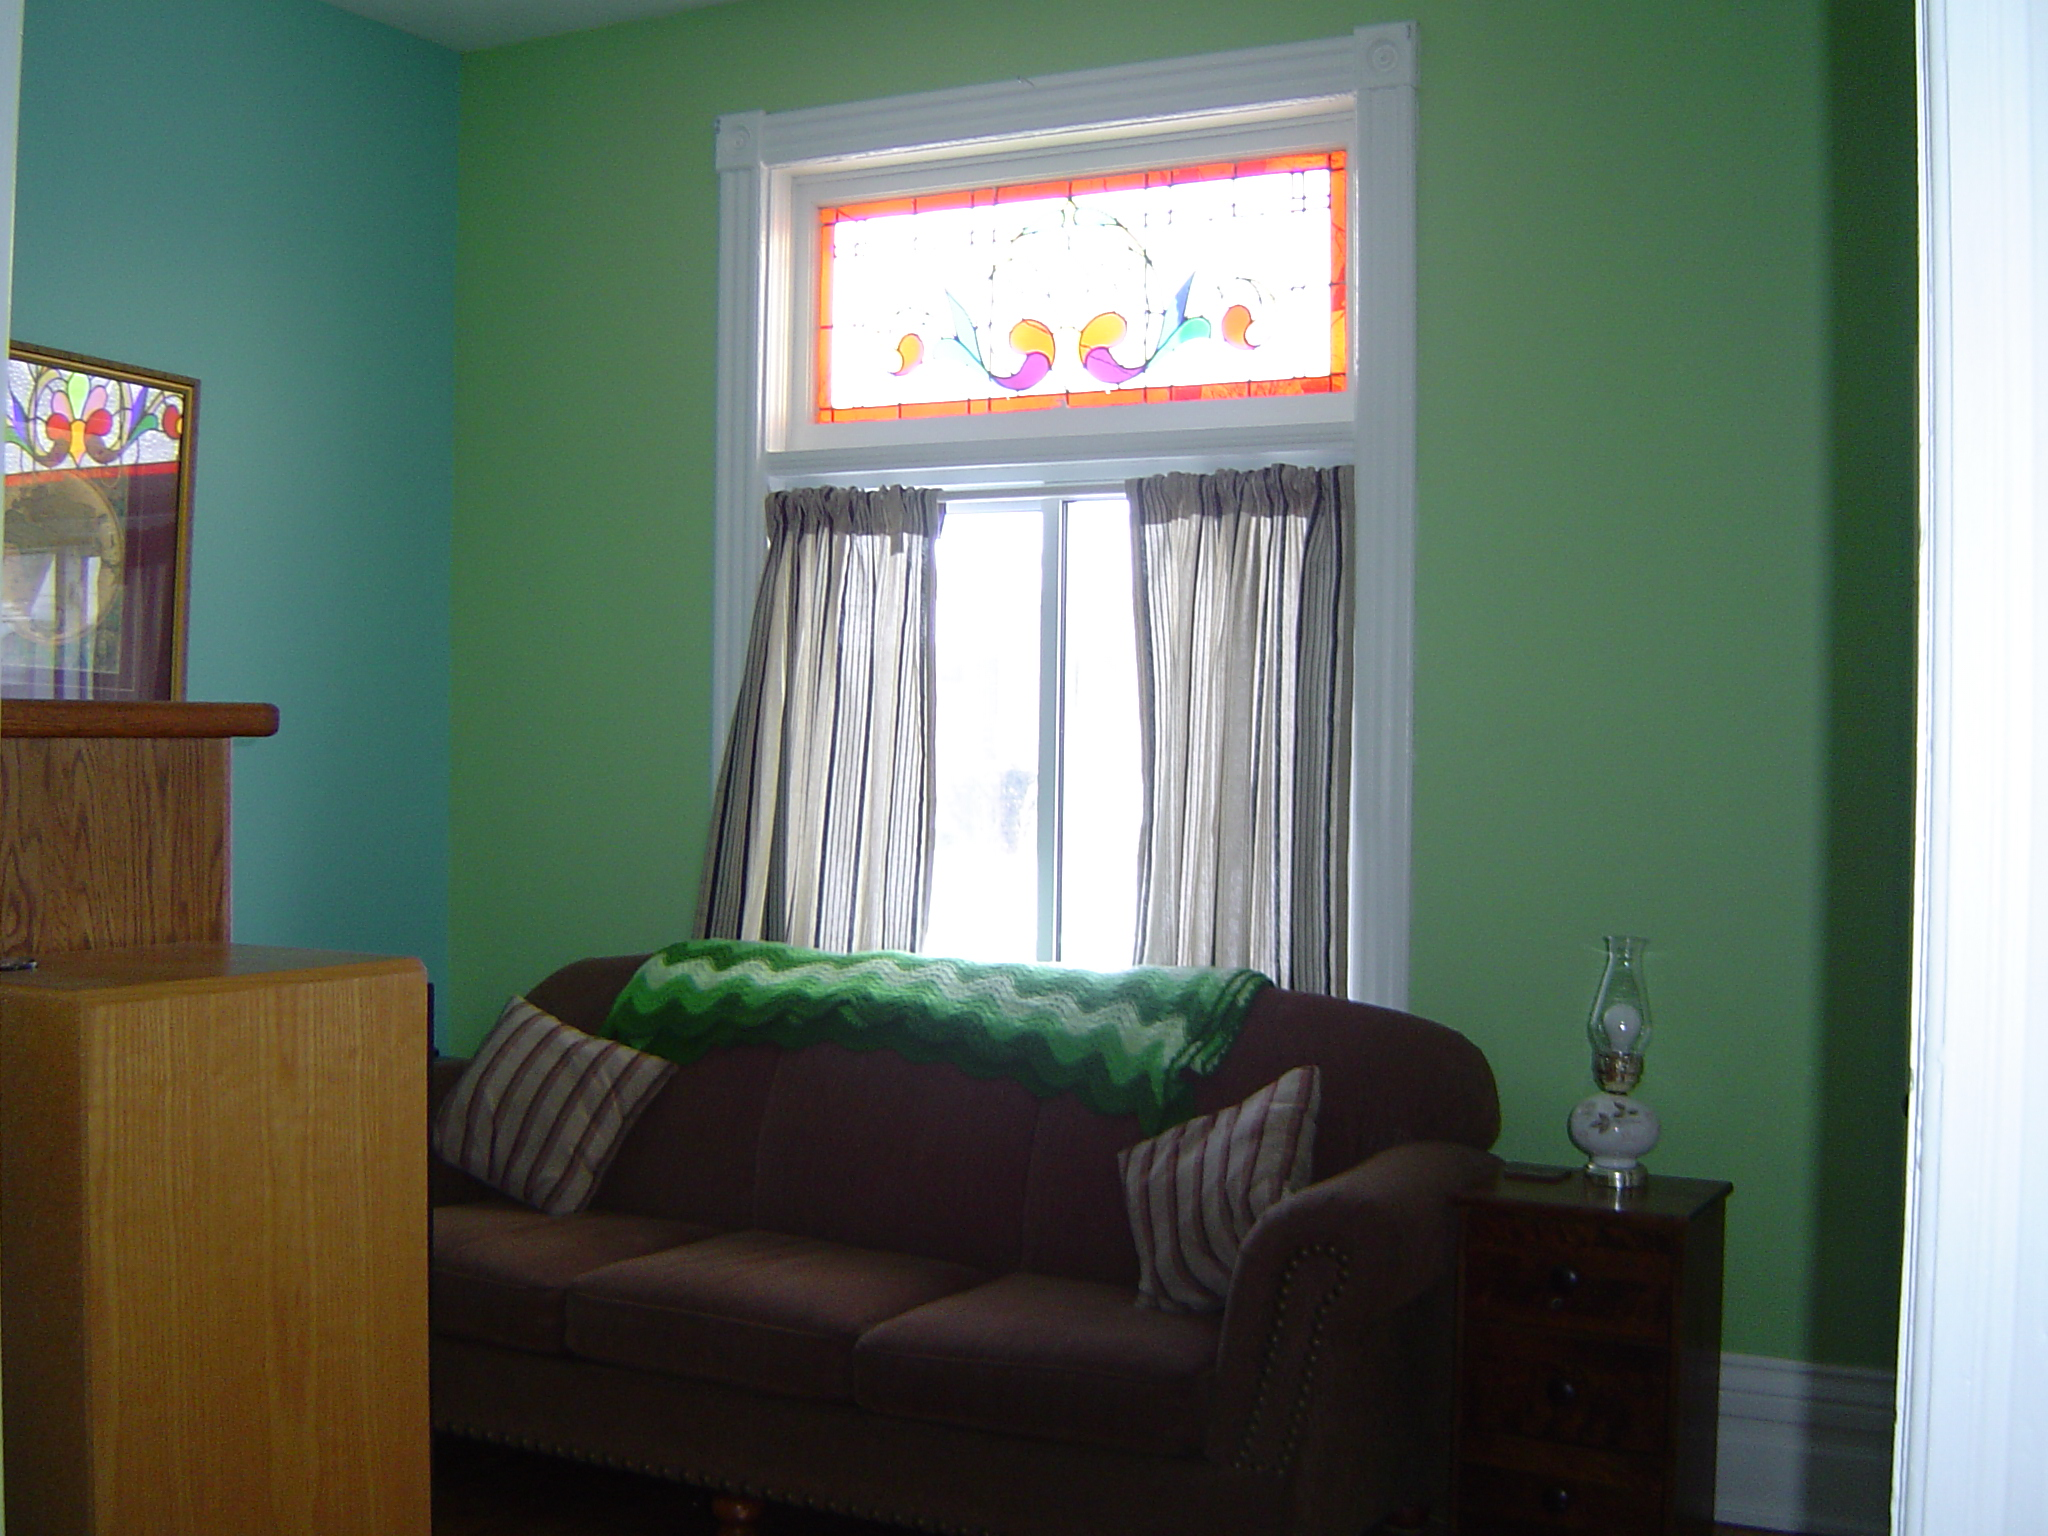 Sunny stained glass window in the living room